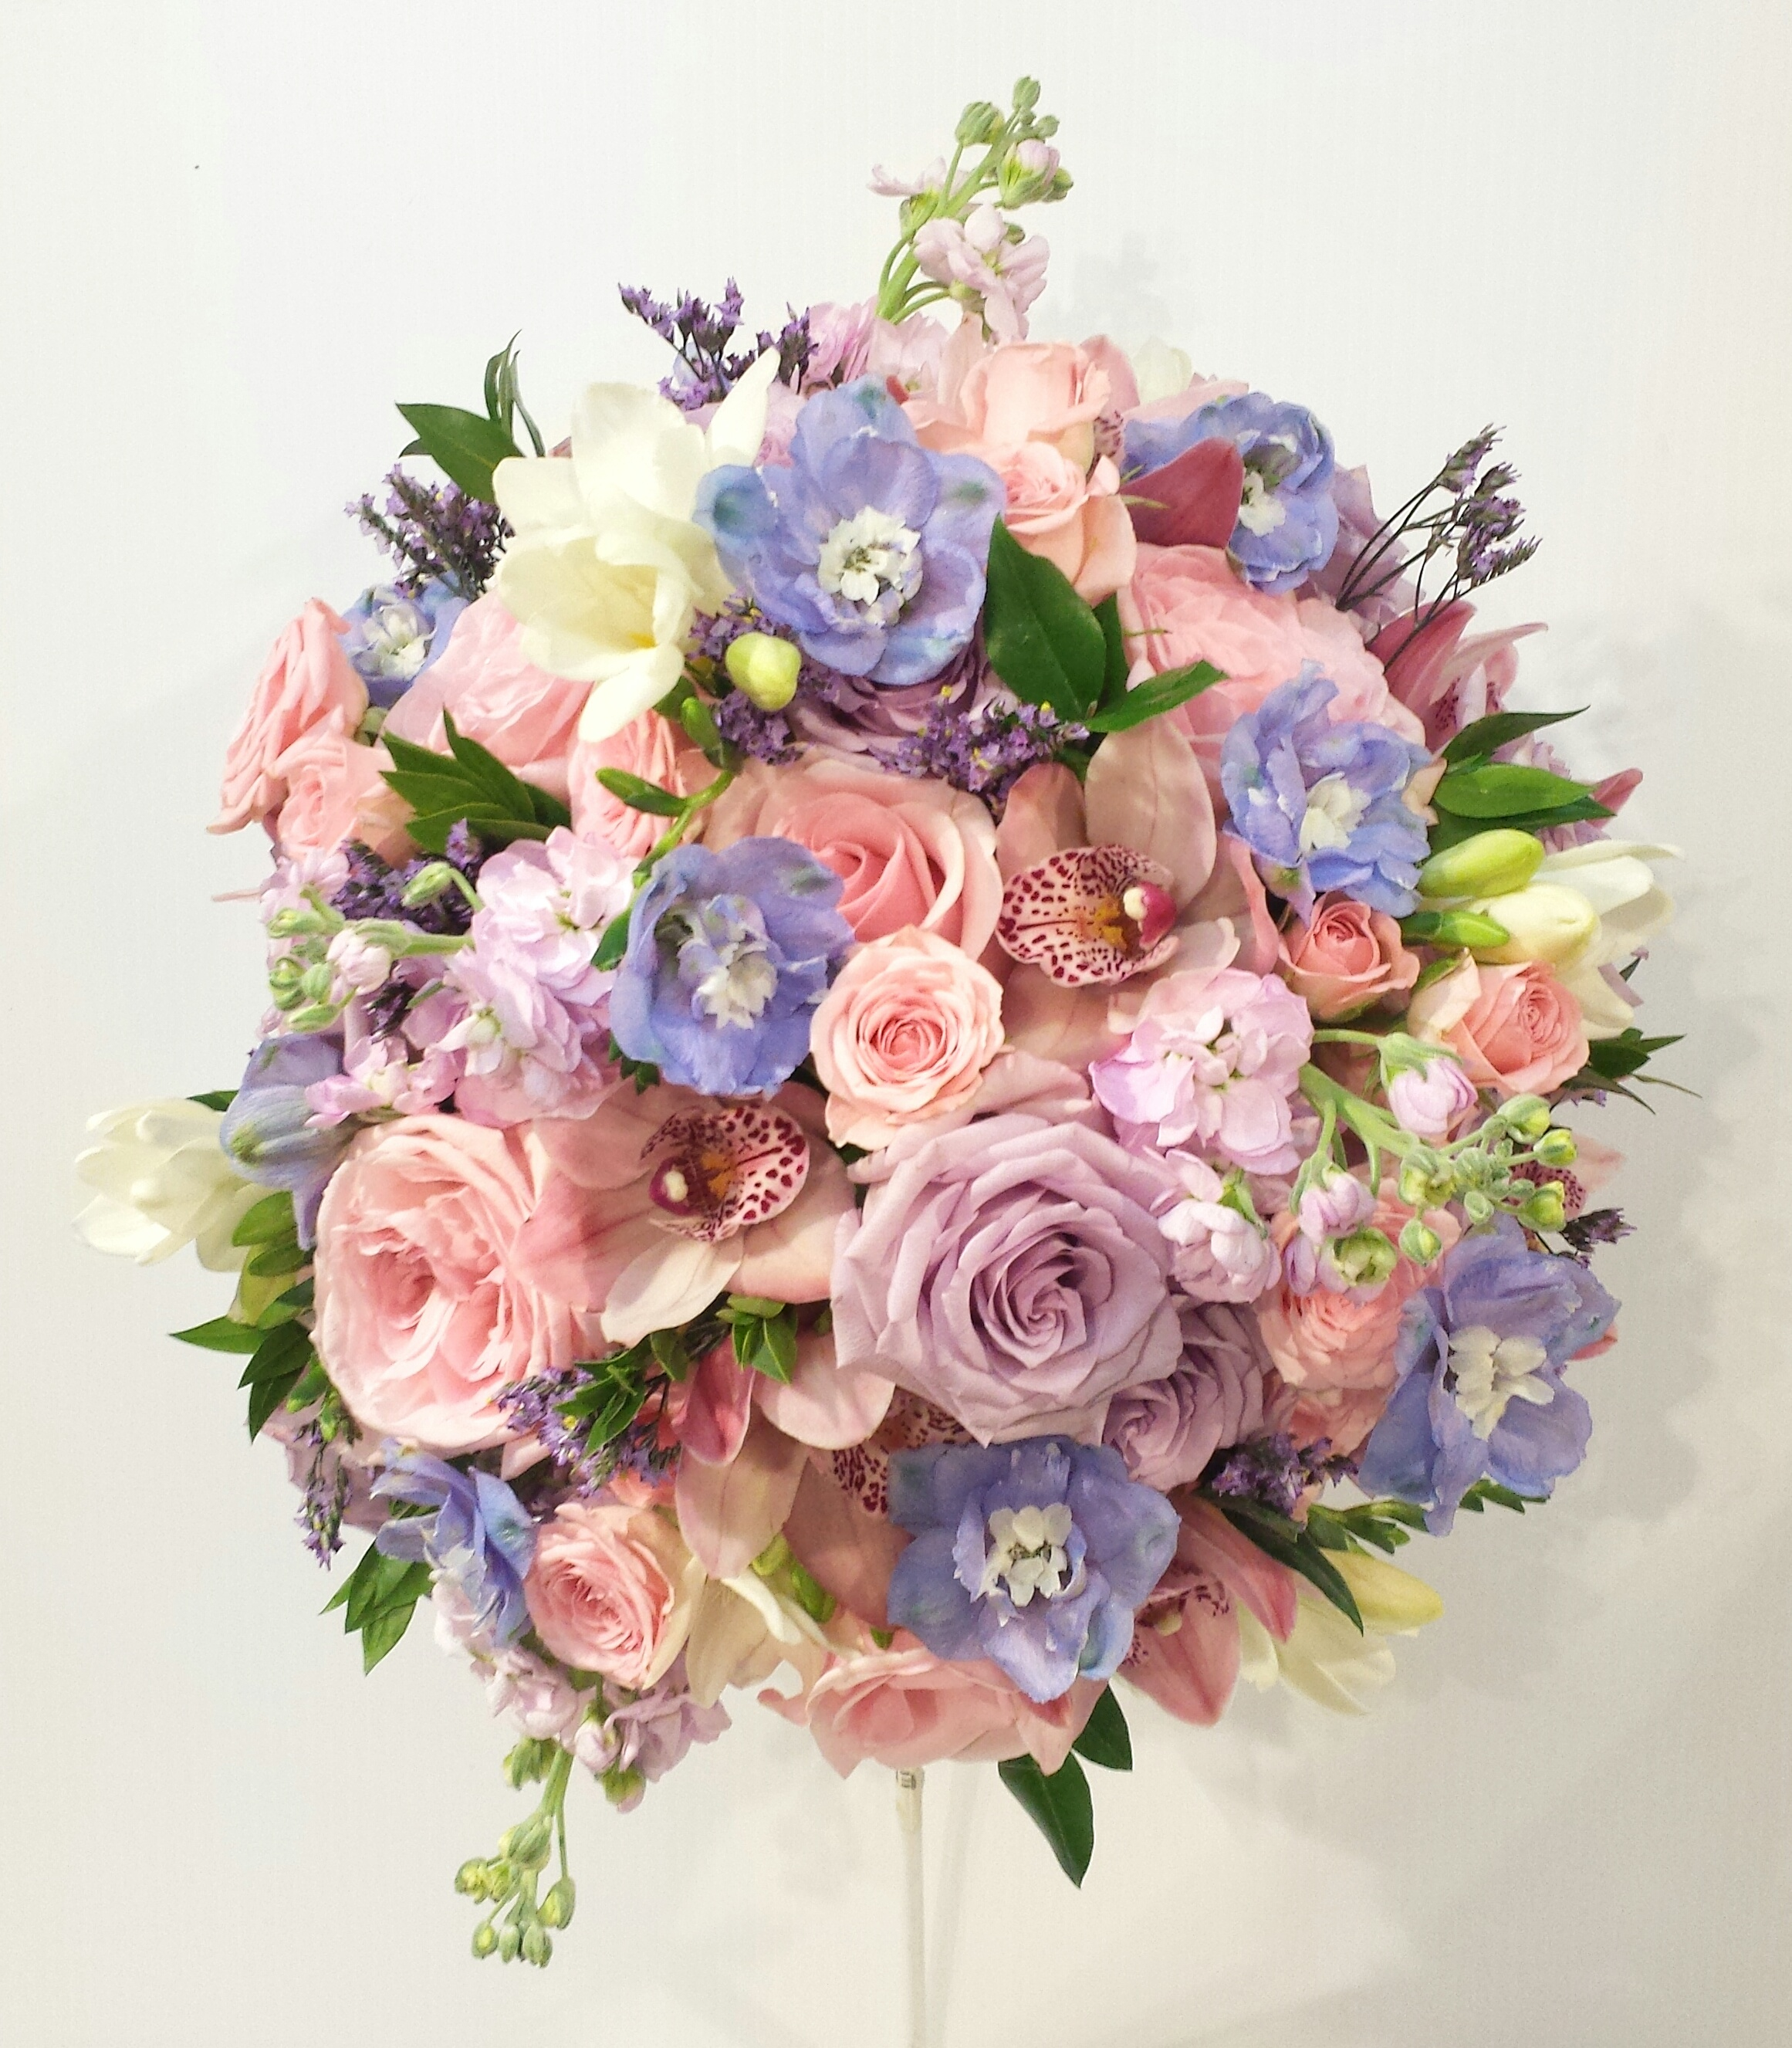 Pastel Wedding Flowers: Fusion Mixed Colored Bouquets